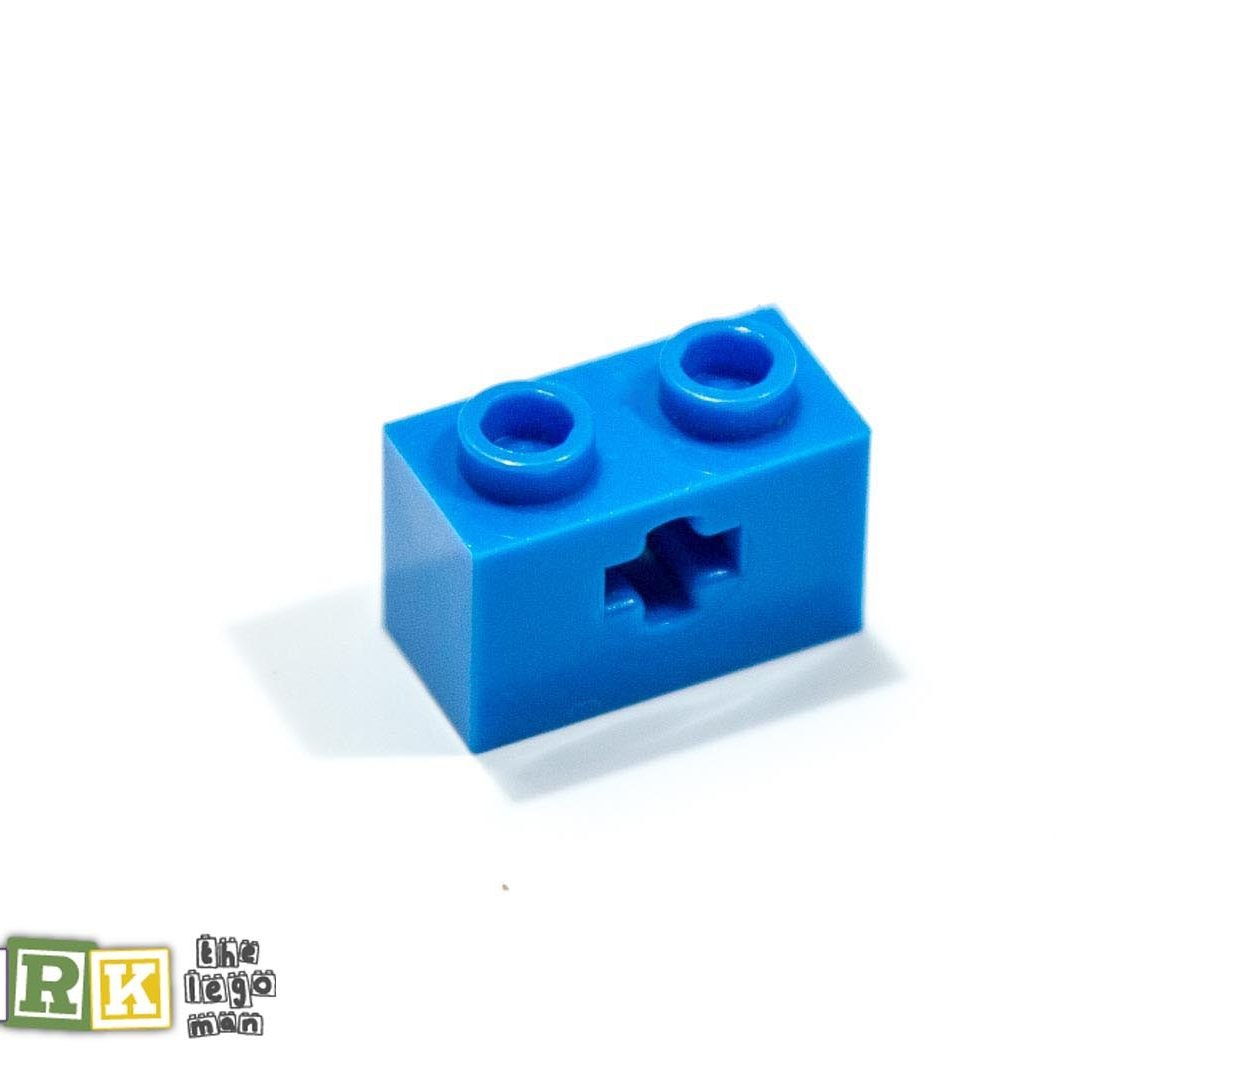 Lego 32064 1x2 Brick With Cross Hole 4233490